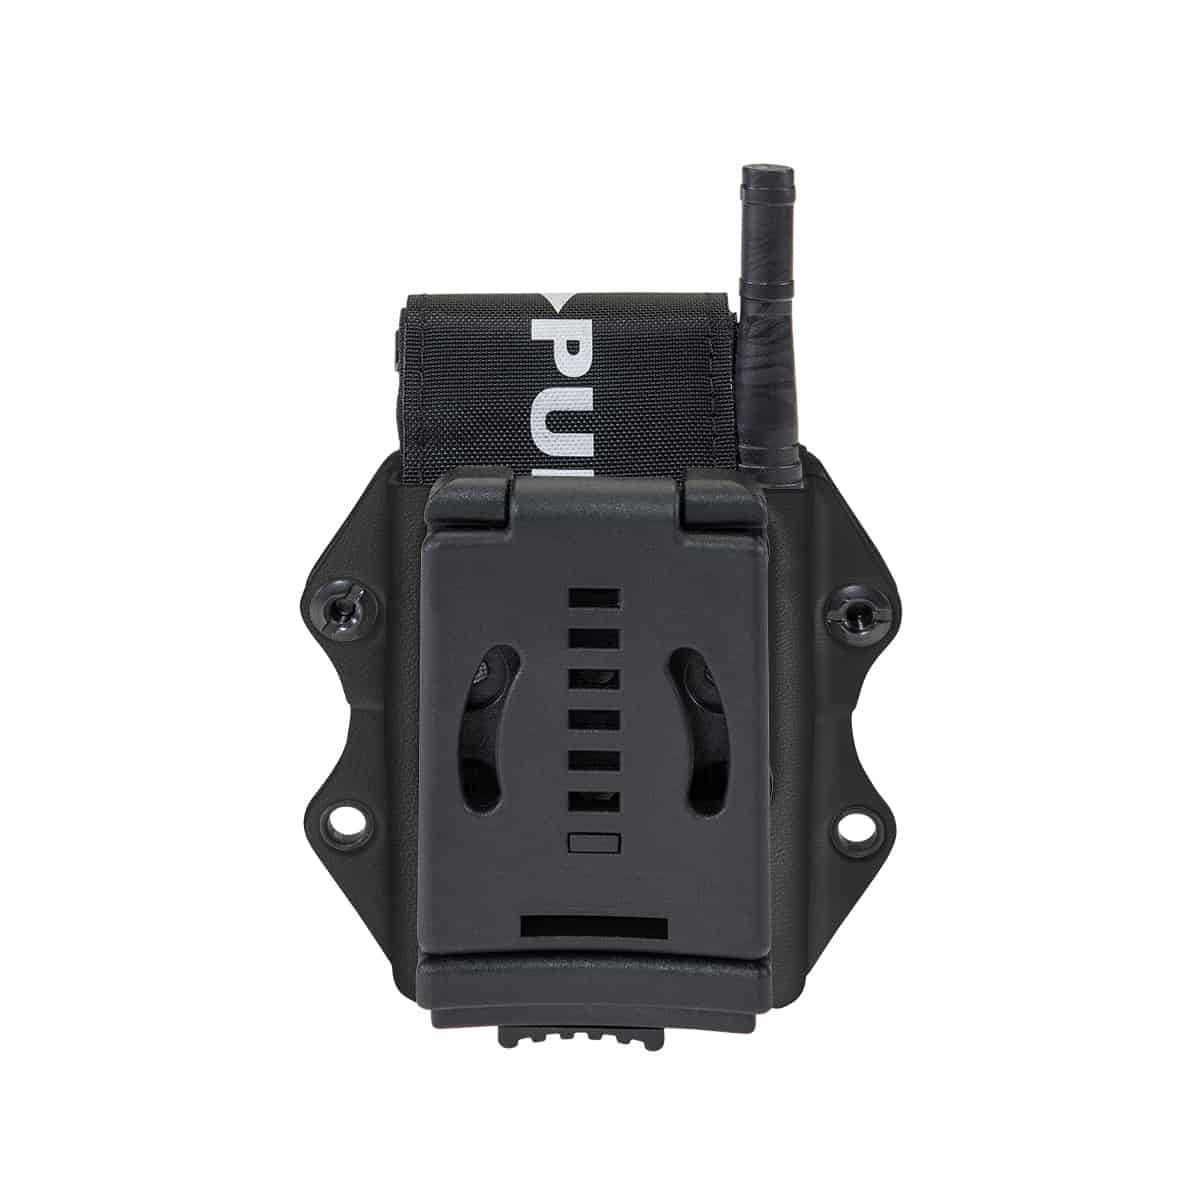 tmt rigid holster dcl clip black